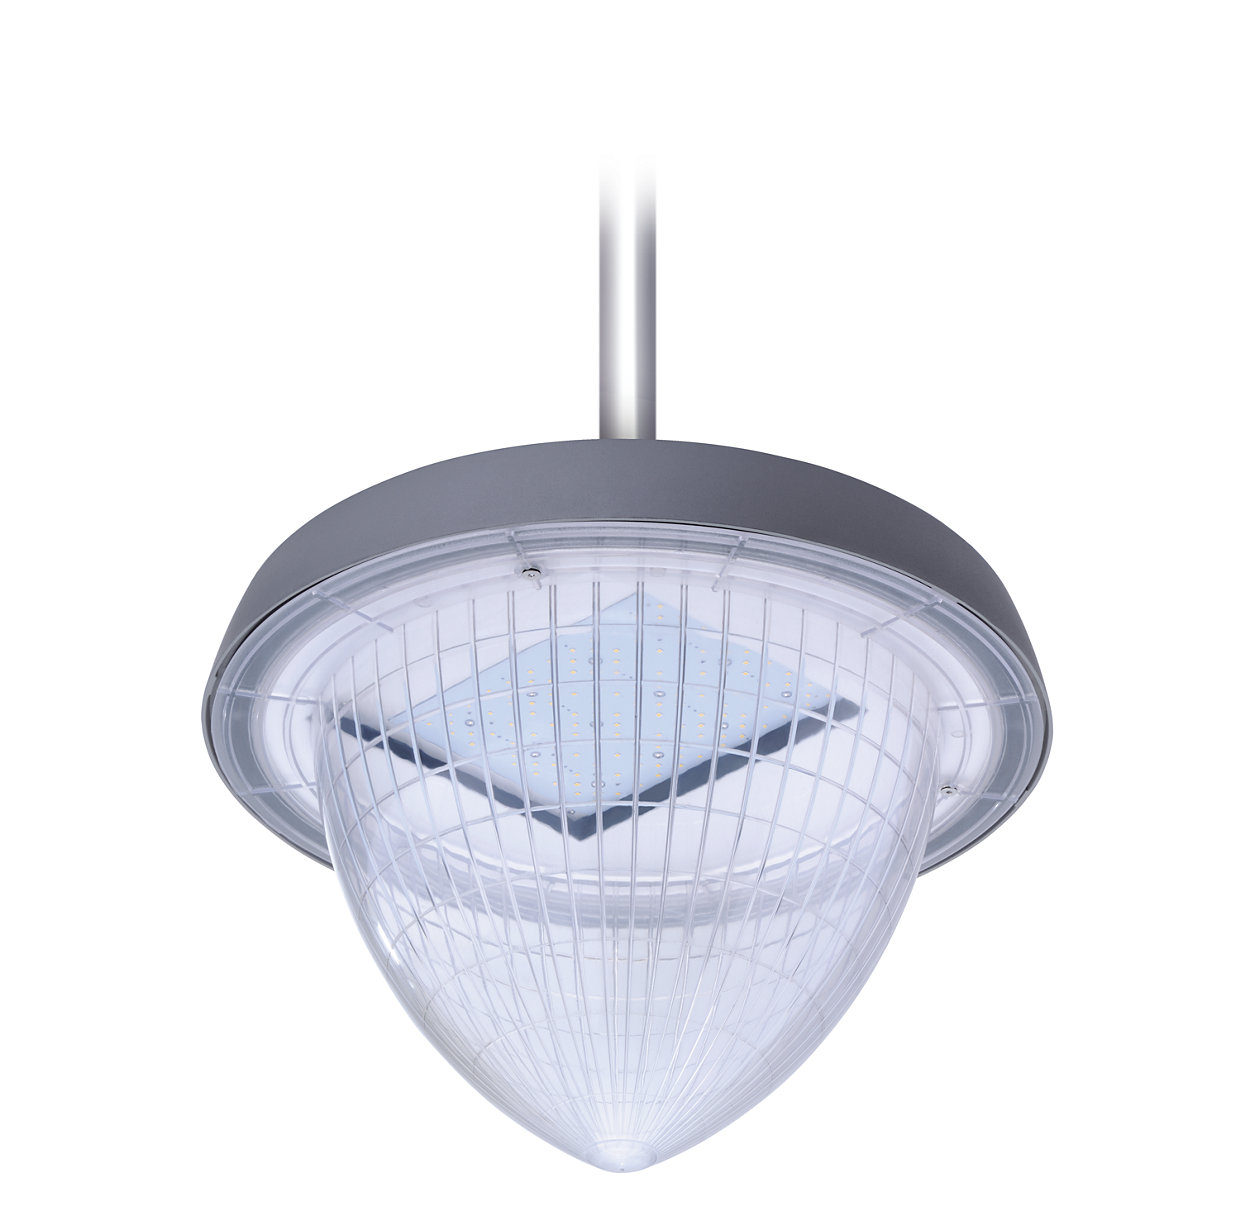 Exquisite, stylish yet classic and versatile urban lighting